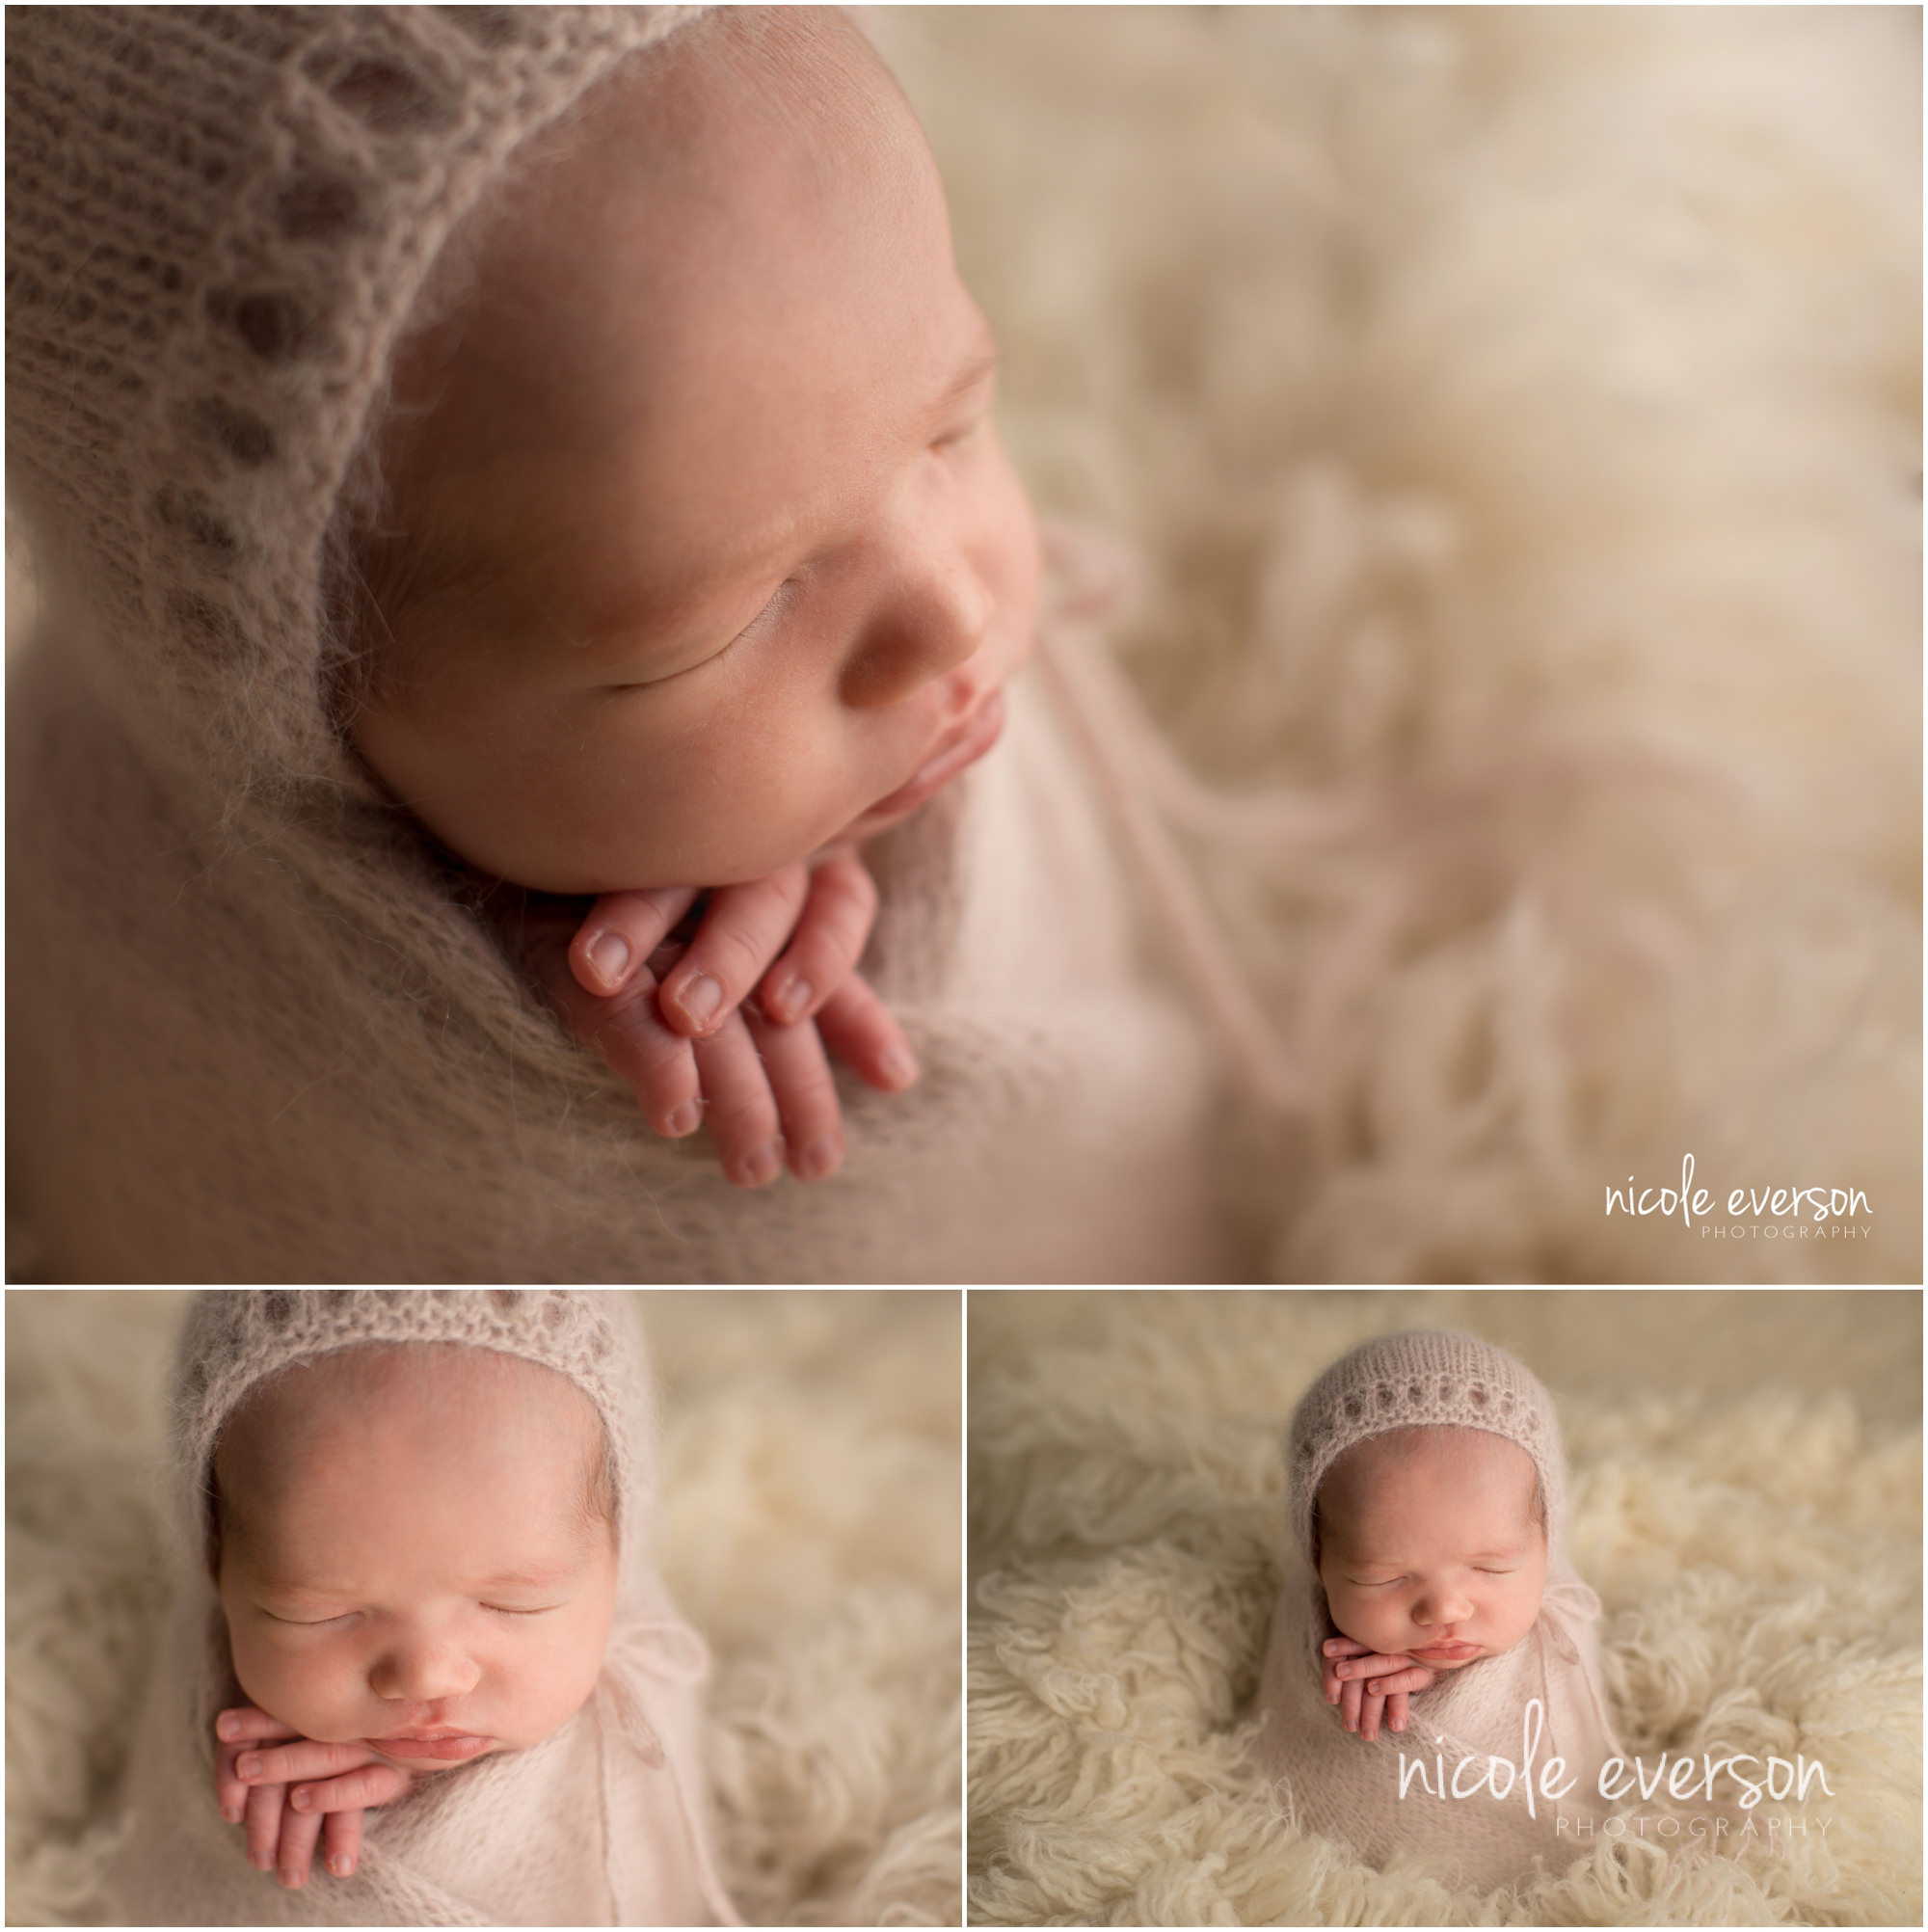 Tallahassee newborn photographed by Nicole Everson Photography